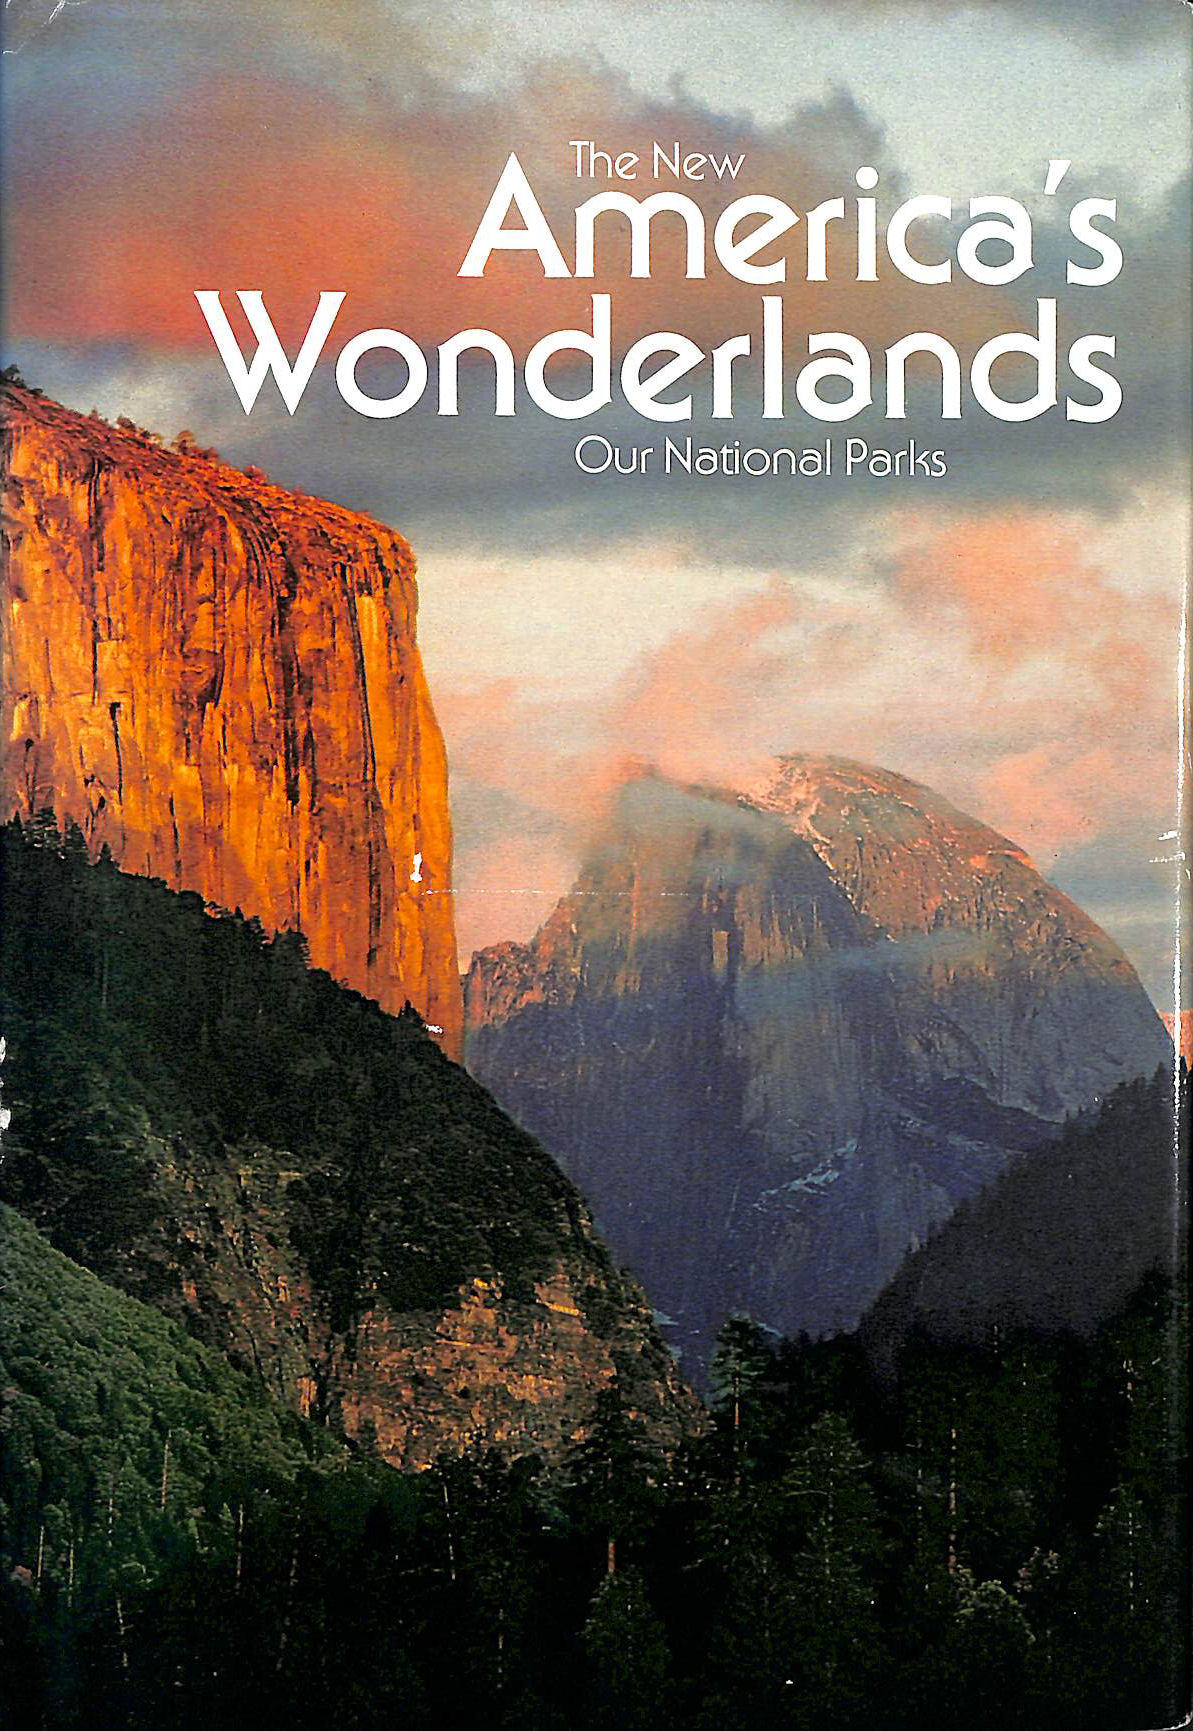 New Americas Wonderlands Our National Parks, National Geographic Staff